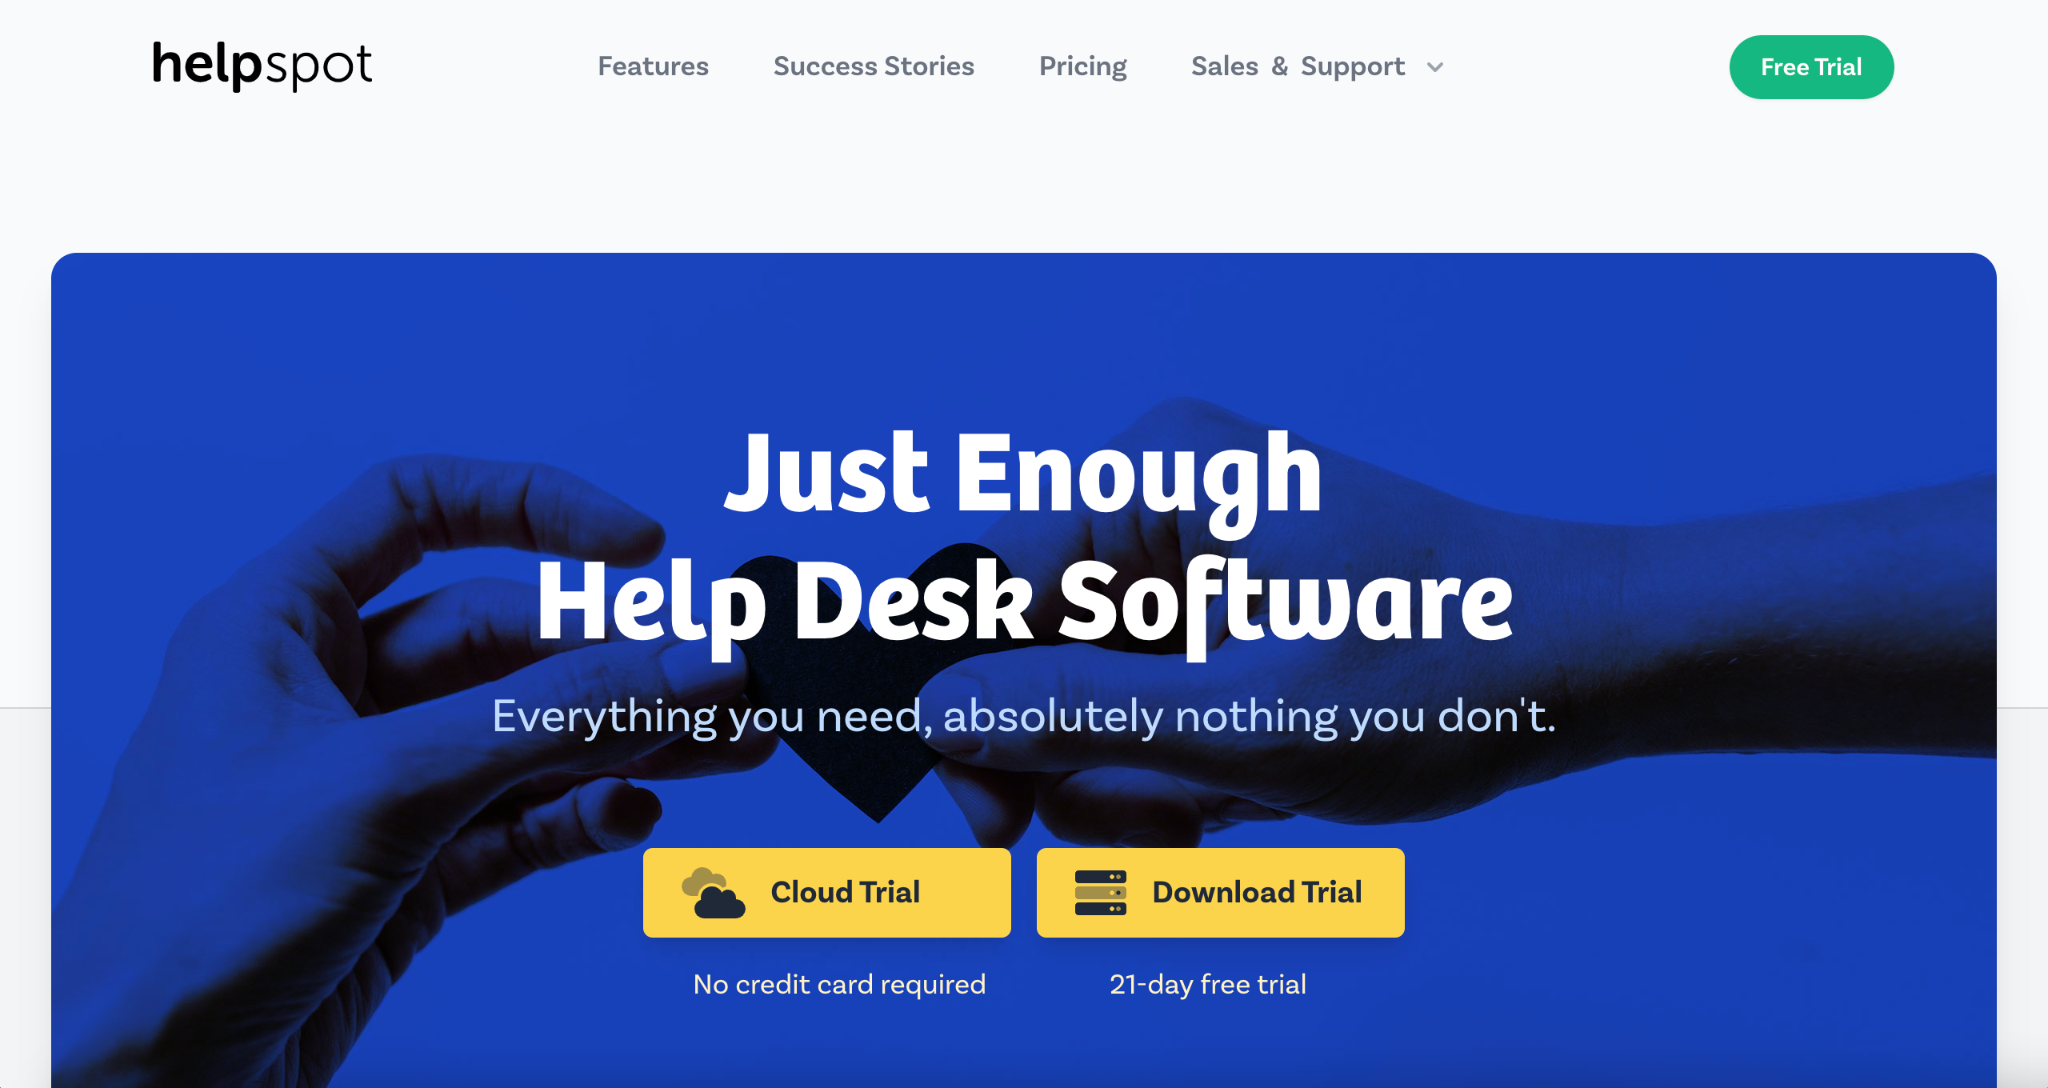 HelpSpot homepage: The Just Enough Help Desk Software